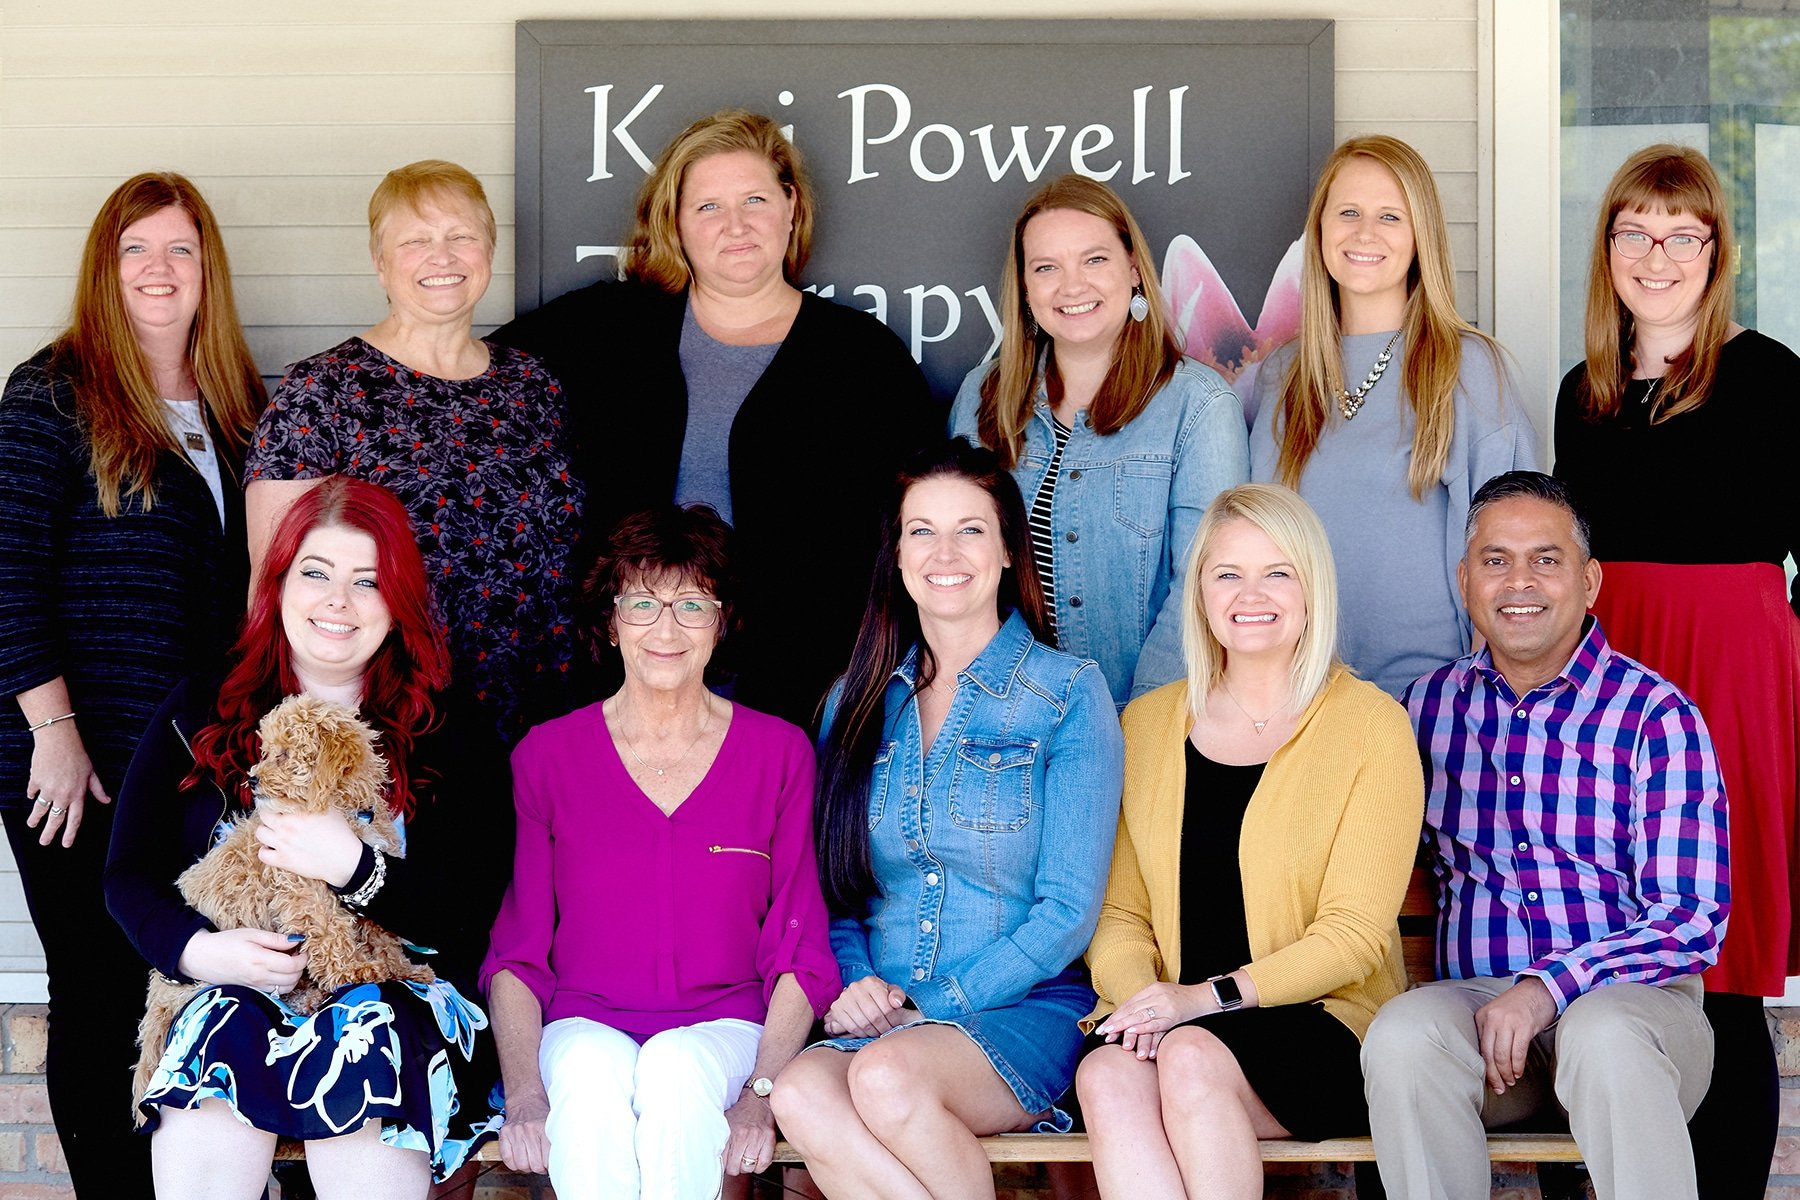 the staff at Keri Powell Therapy